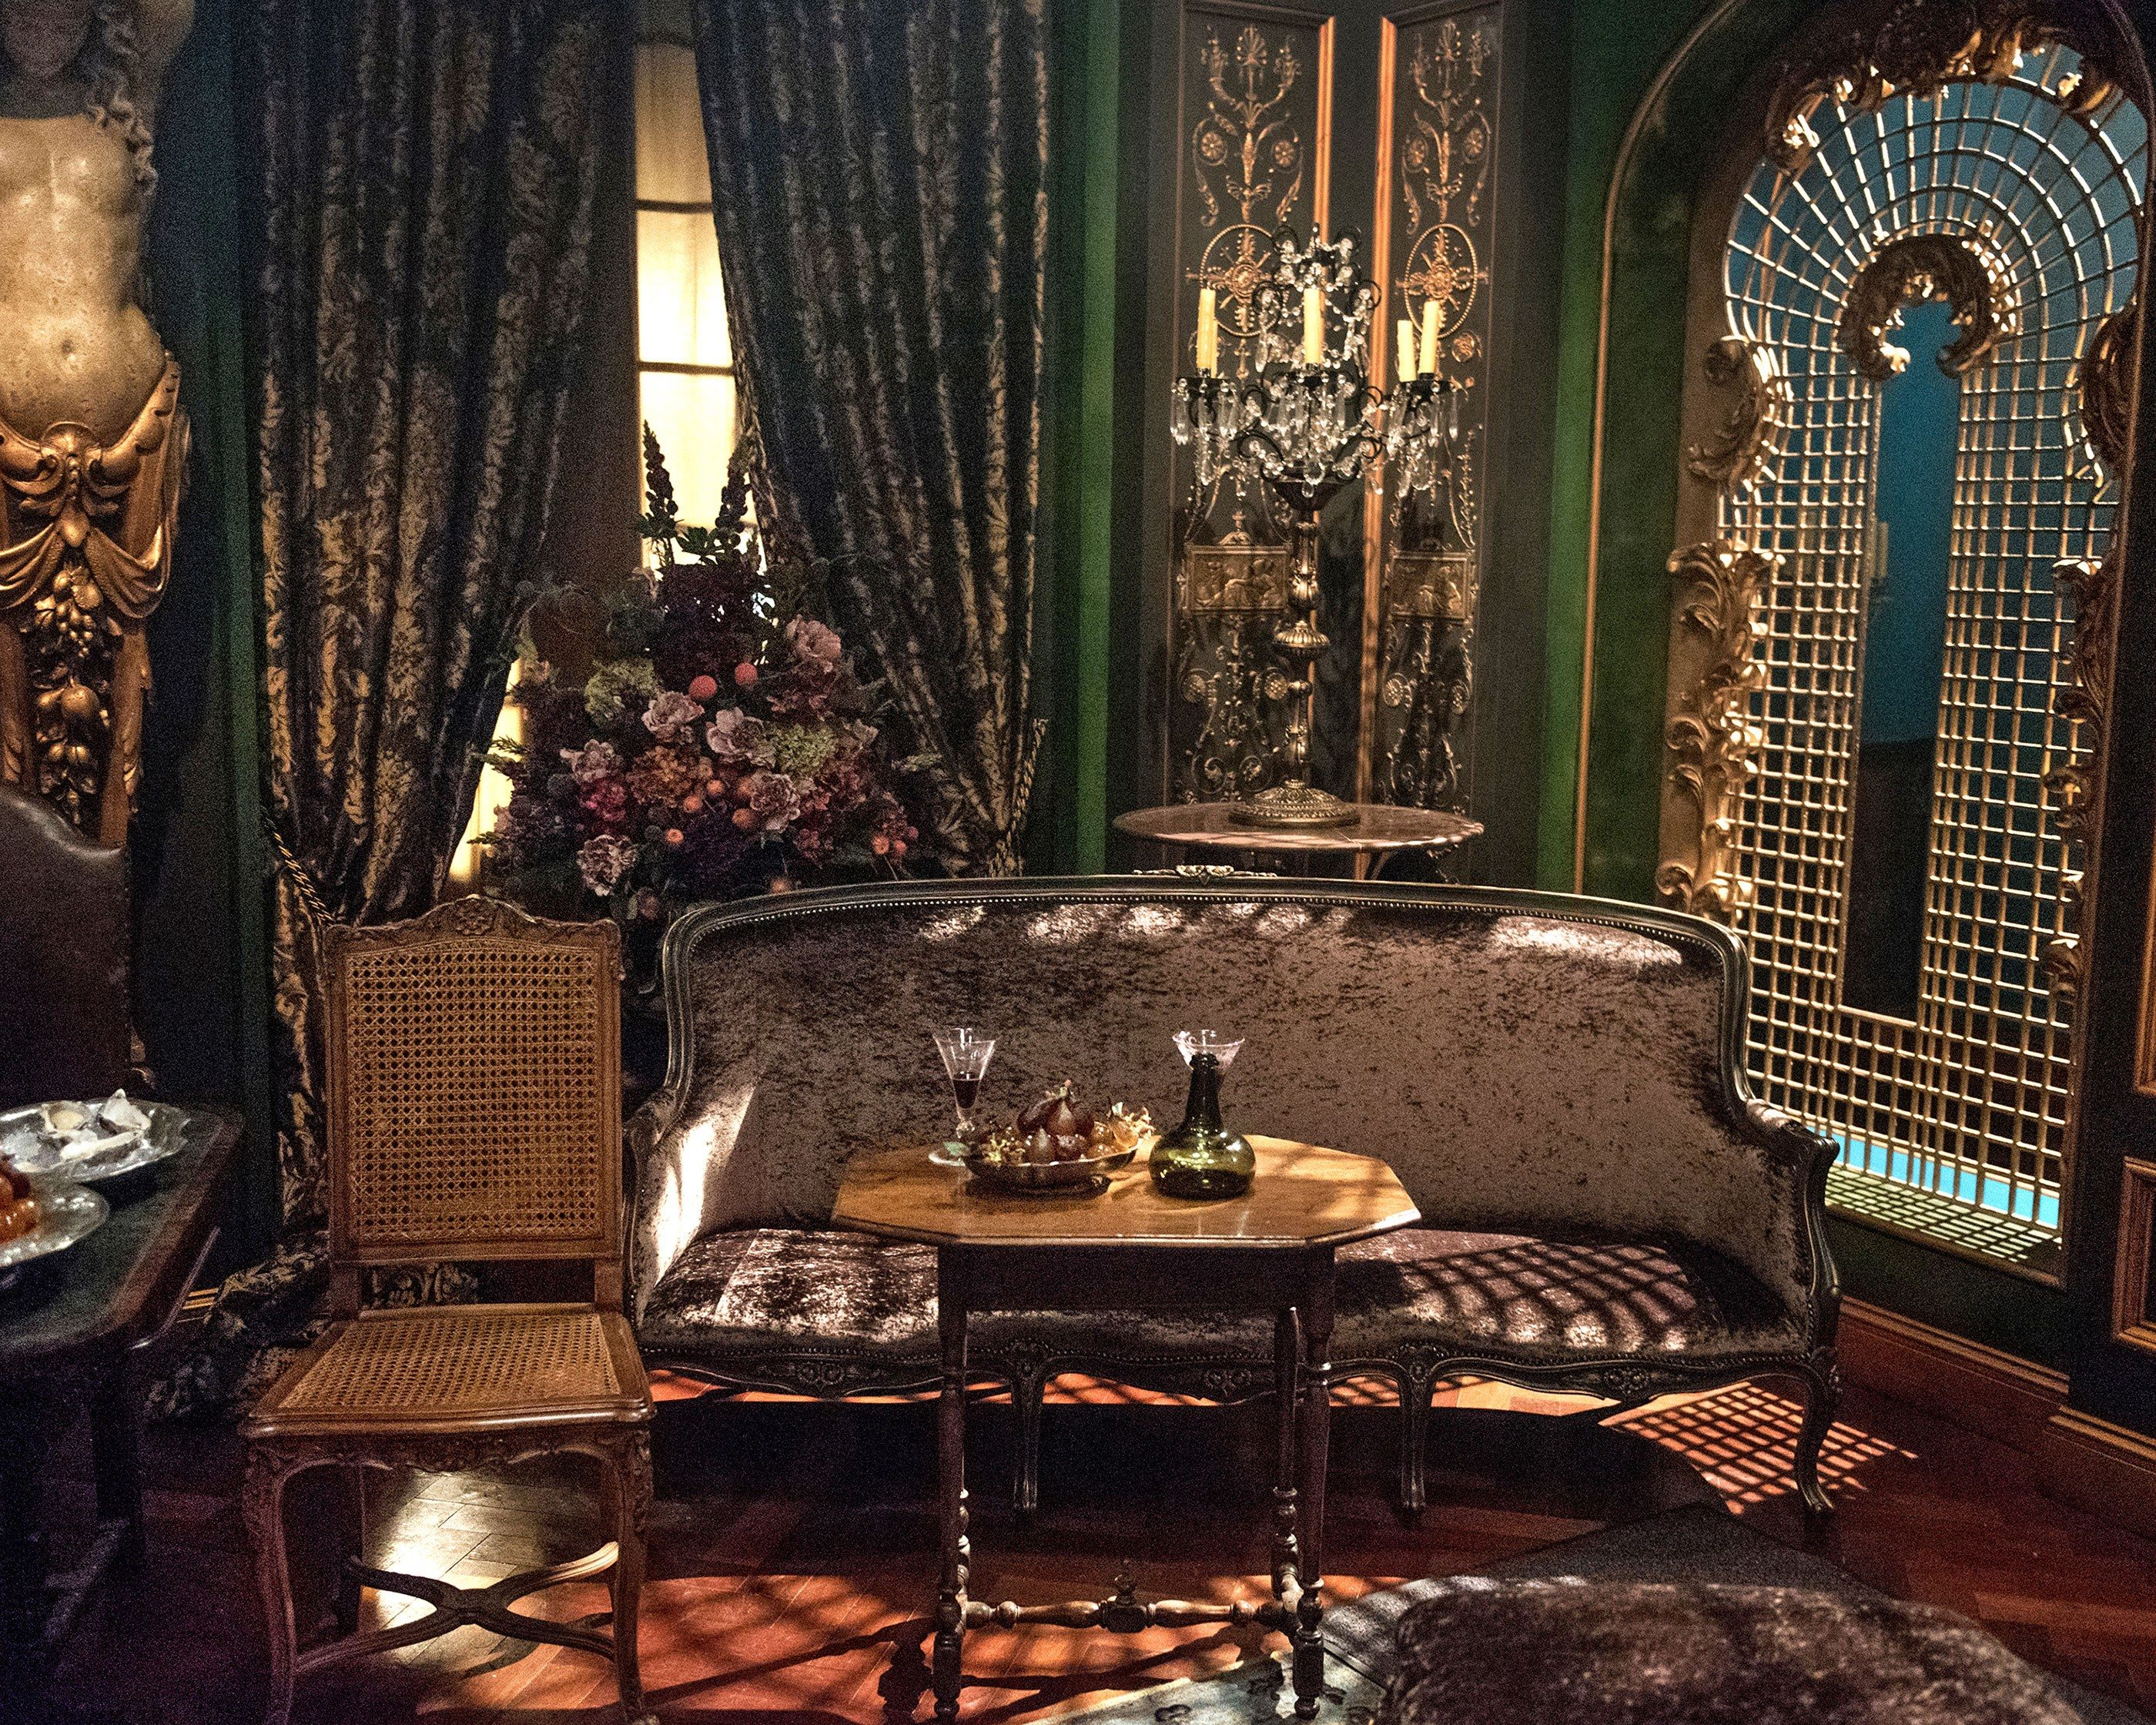 """Steele went for broke with teal velvet walls and shimmering moldings in the brothel set. The pièce de résistance is what Steele refers to as """"the carved ladies,"""" one of which is shown here."""